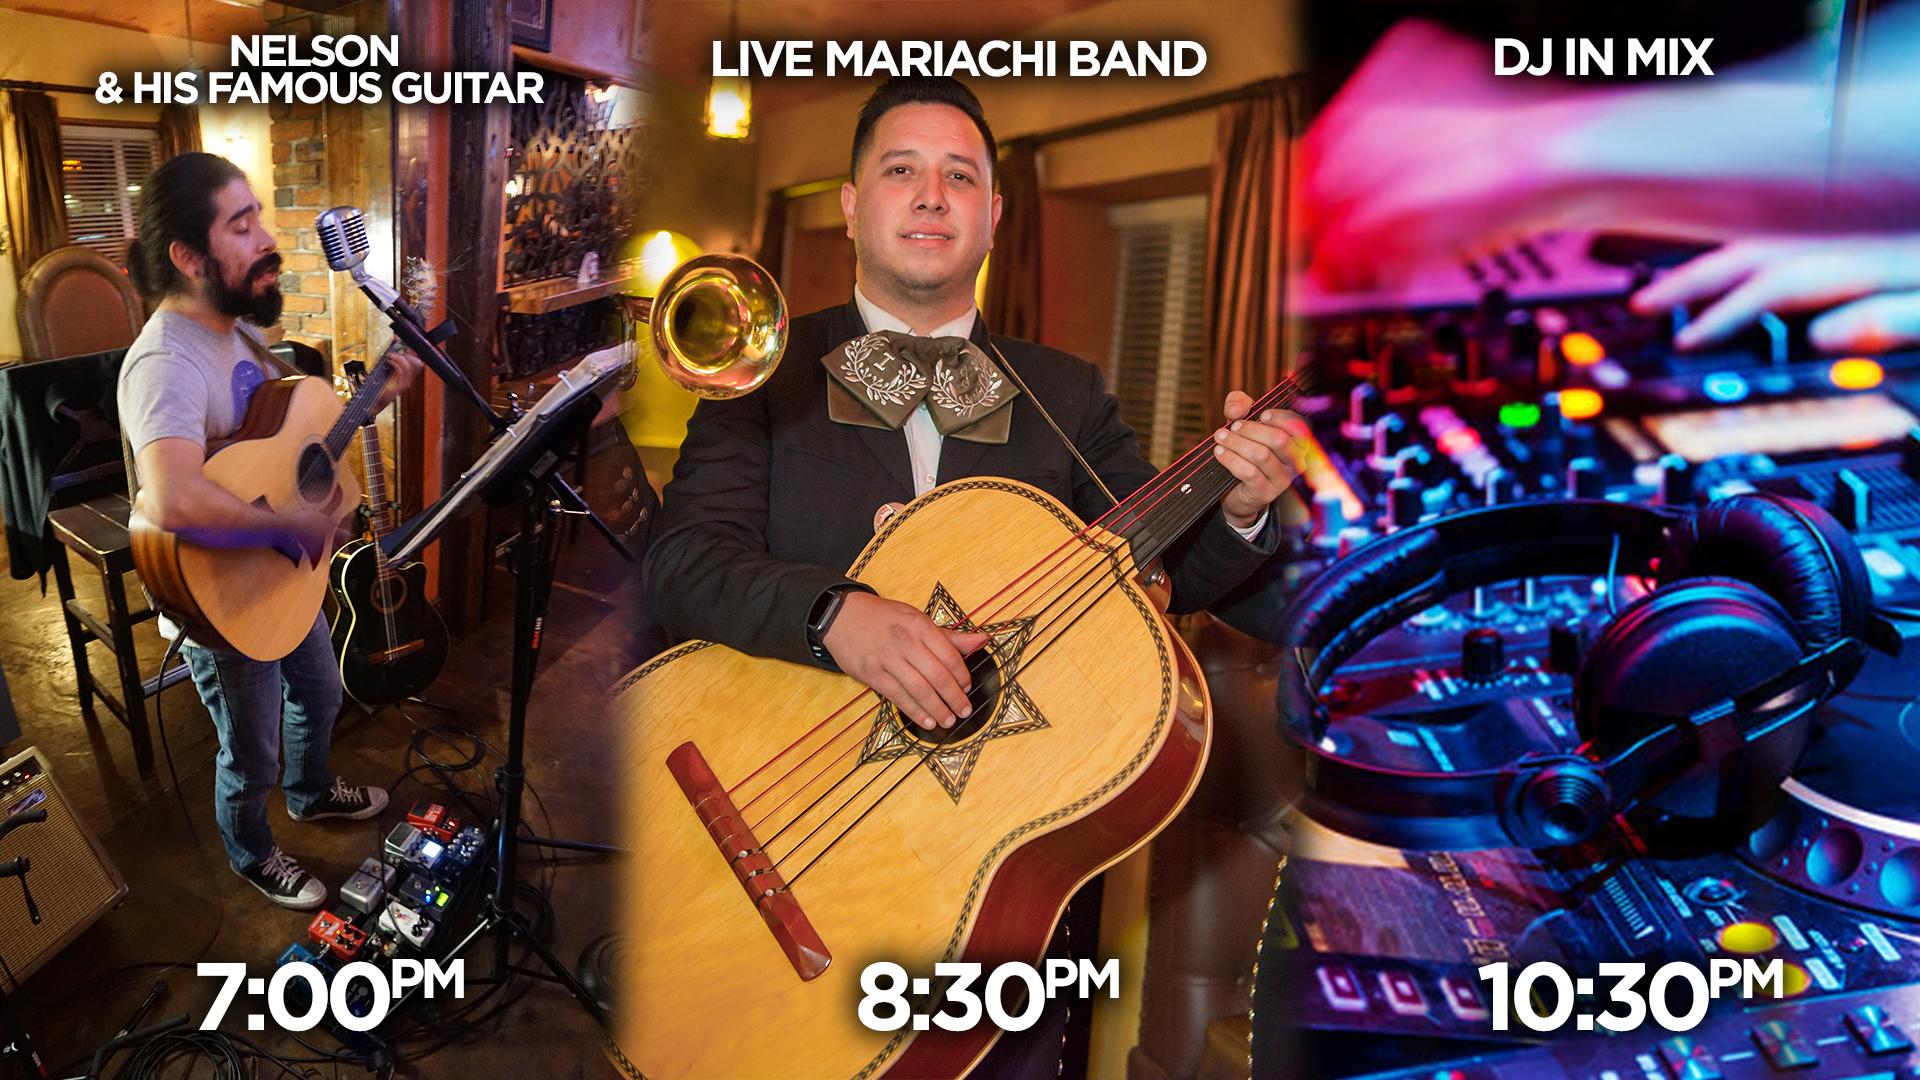 SATURDAY NIGHTS - Starting at 7pm with Nelson & his famous guitar, followed by Mariachi Imperial at 8:30pm, & finishing of the night DJ Tropical in the mix every Saturday night.!